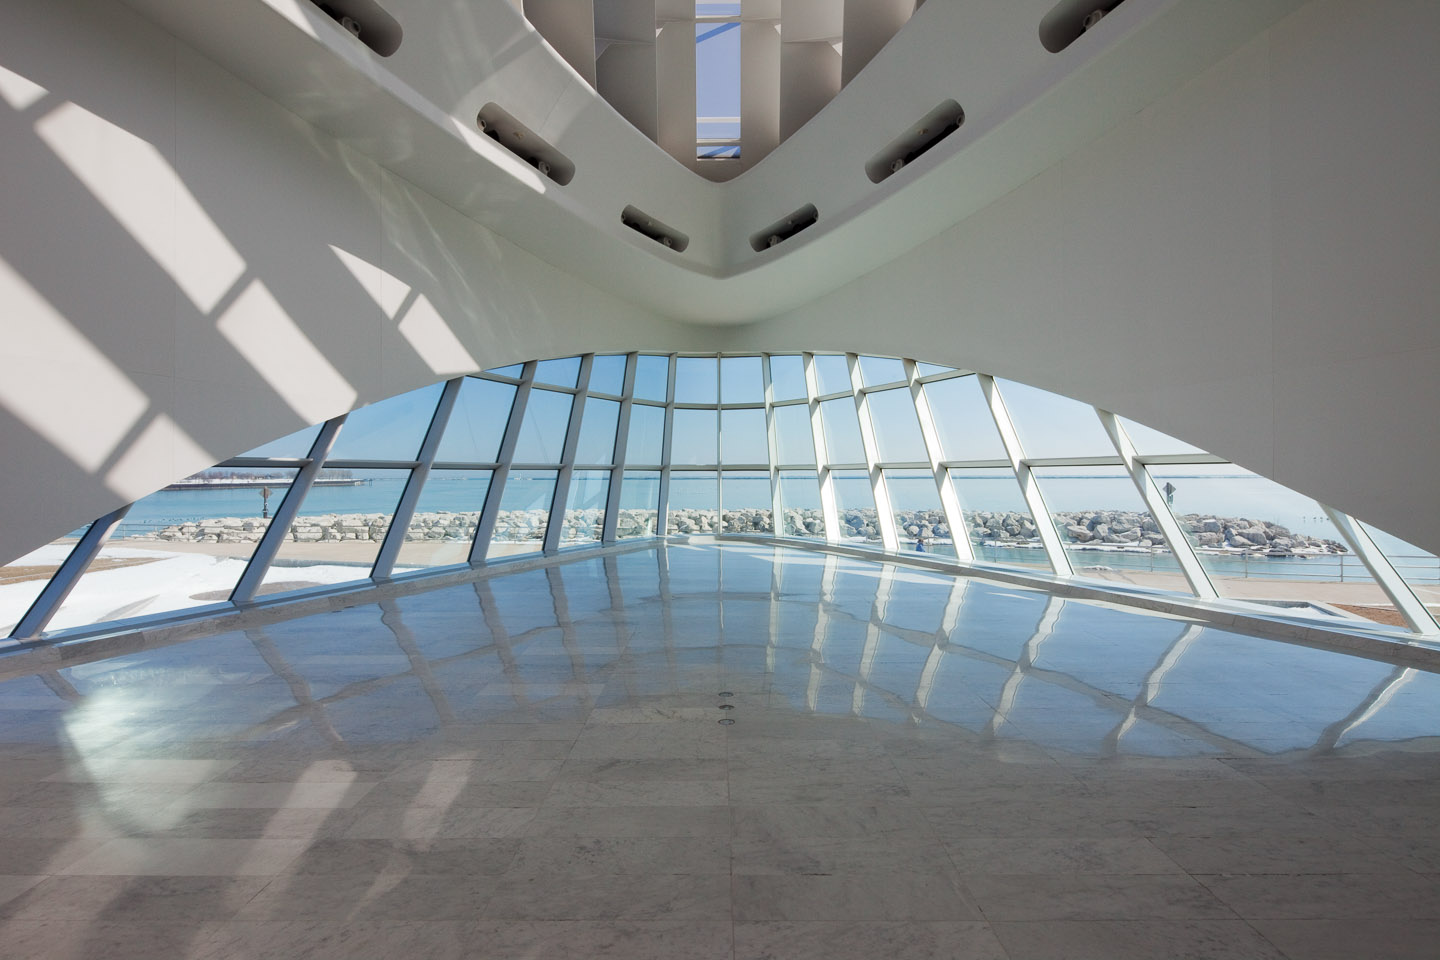 the end of main gallery space in the Milwaukee Art Museum, designed by Santiago Calatrava, photographed by Jacob Rosenfeld